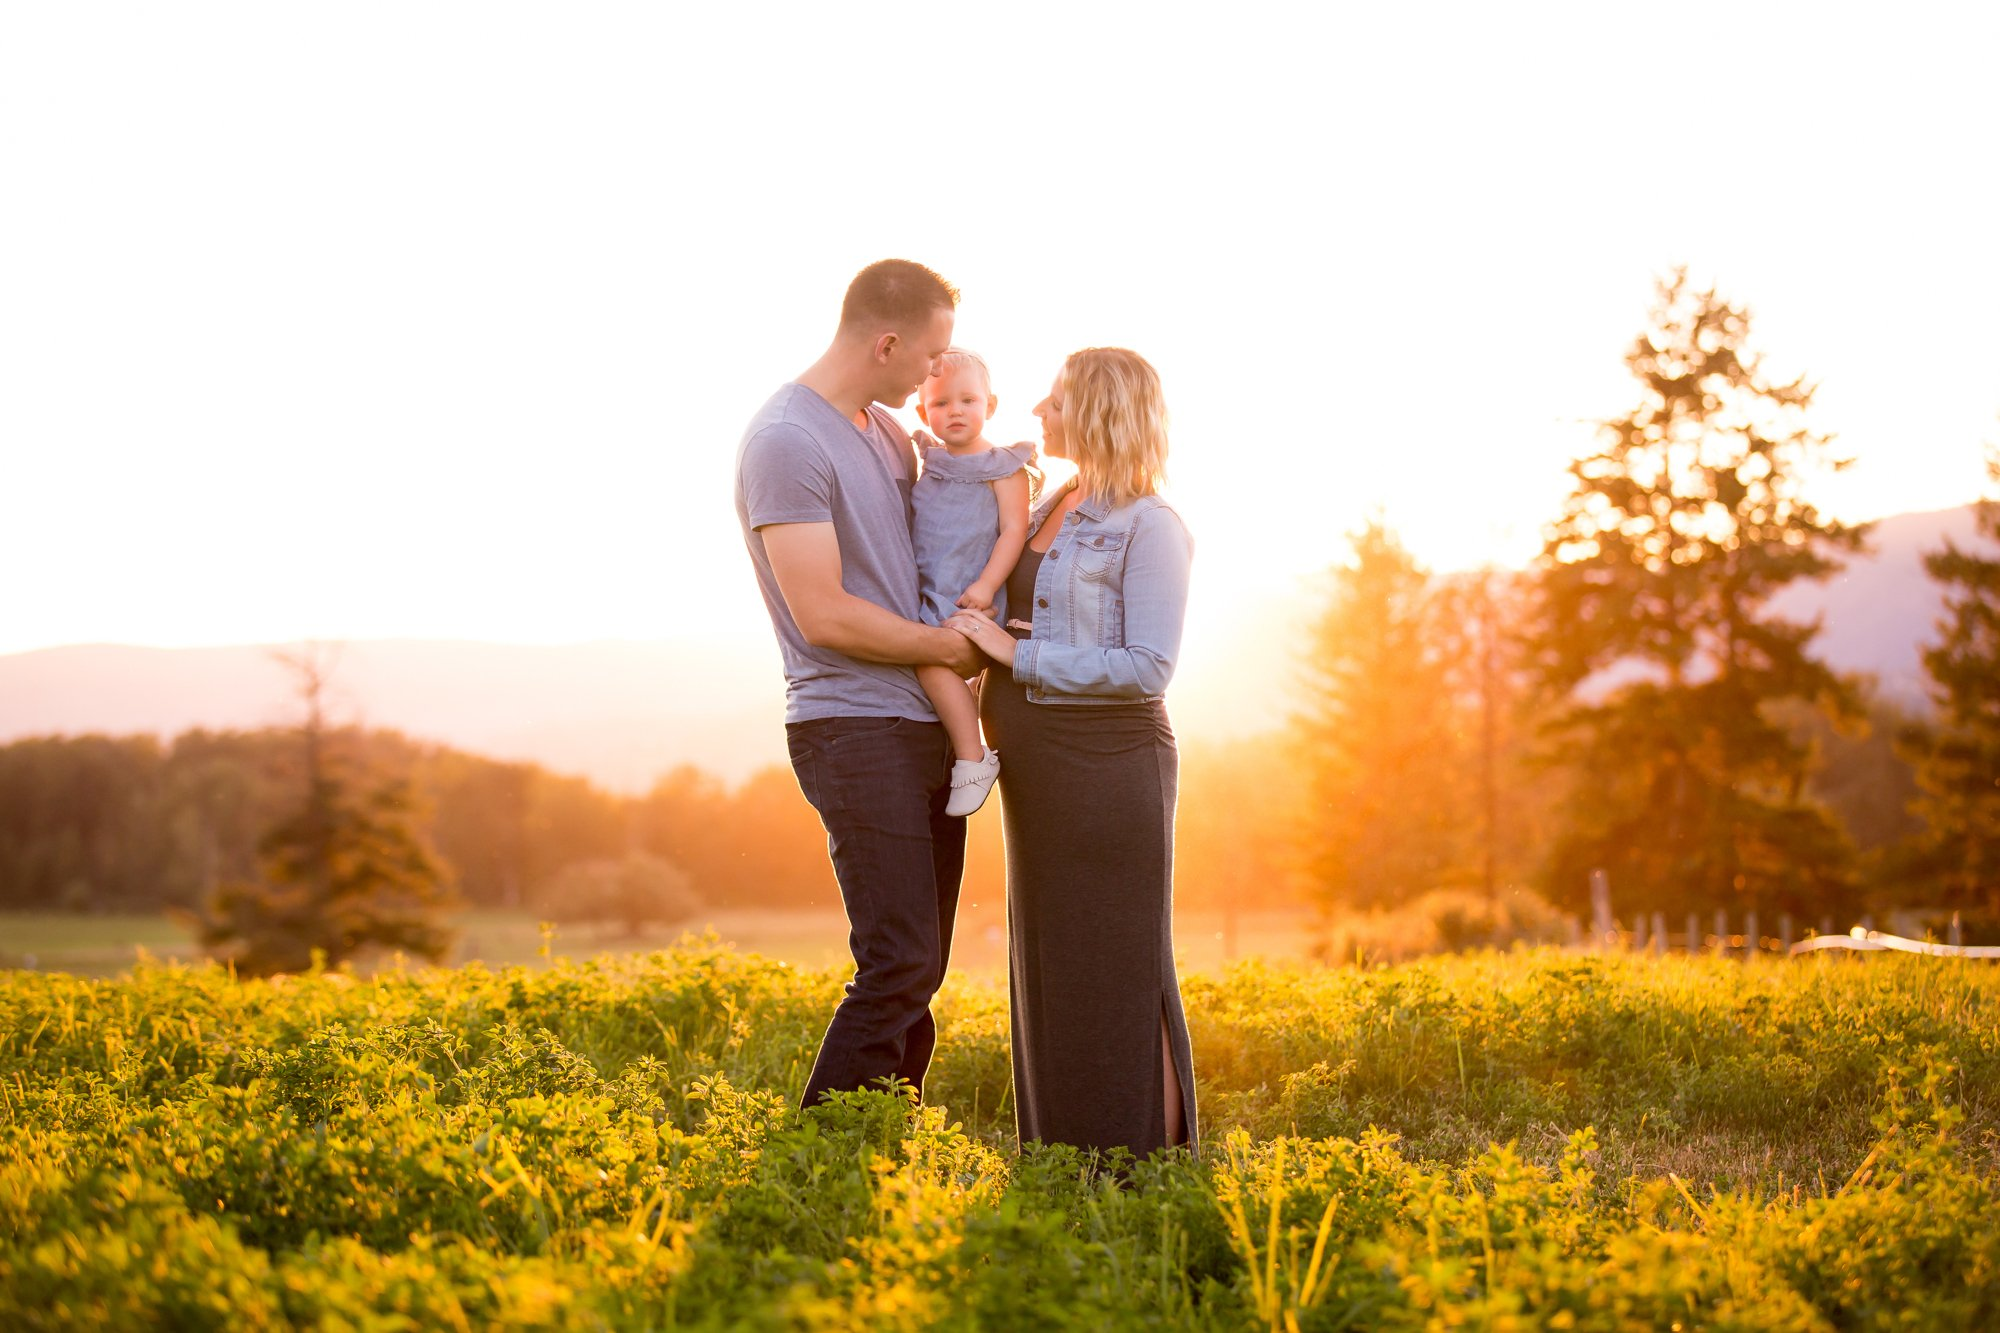 A family stadning together at golden hour